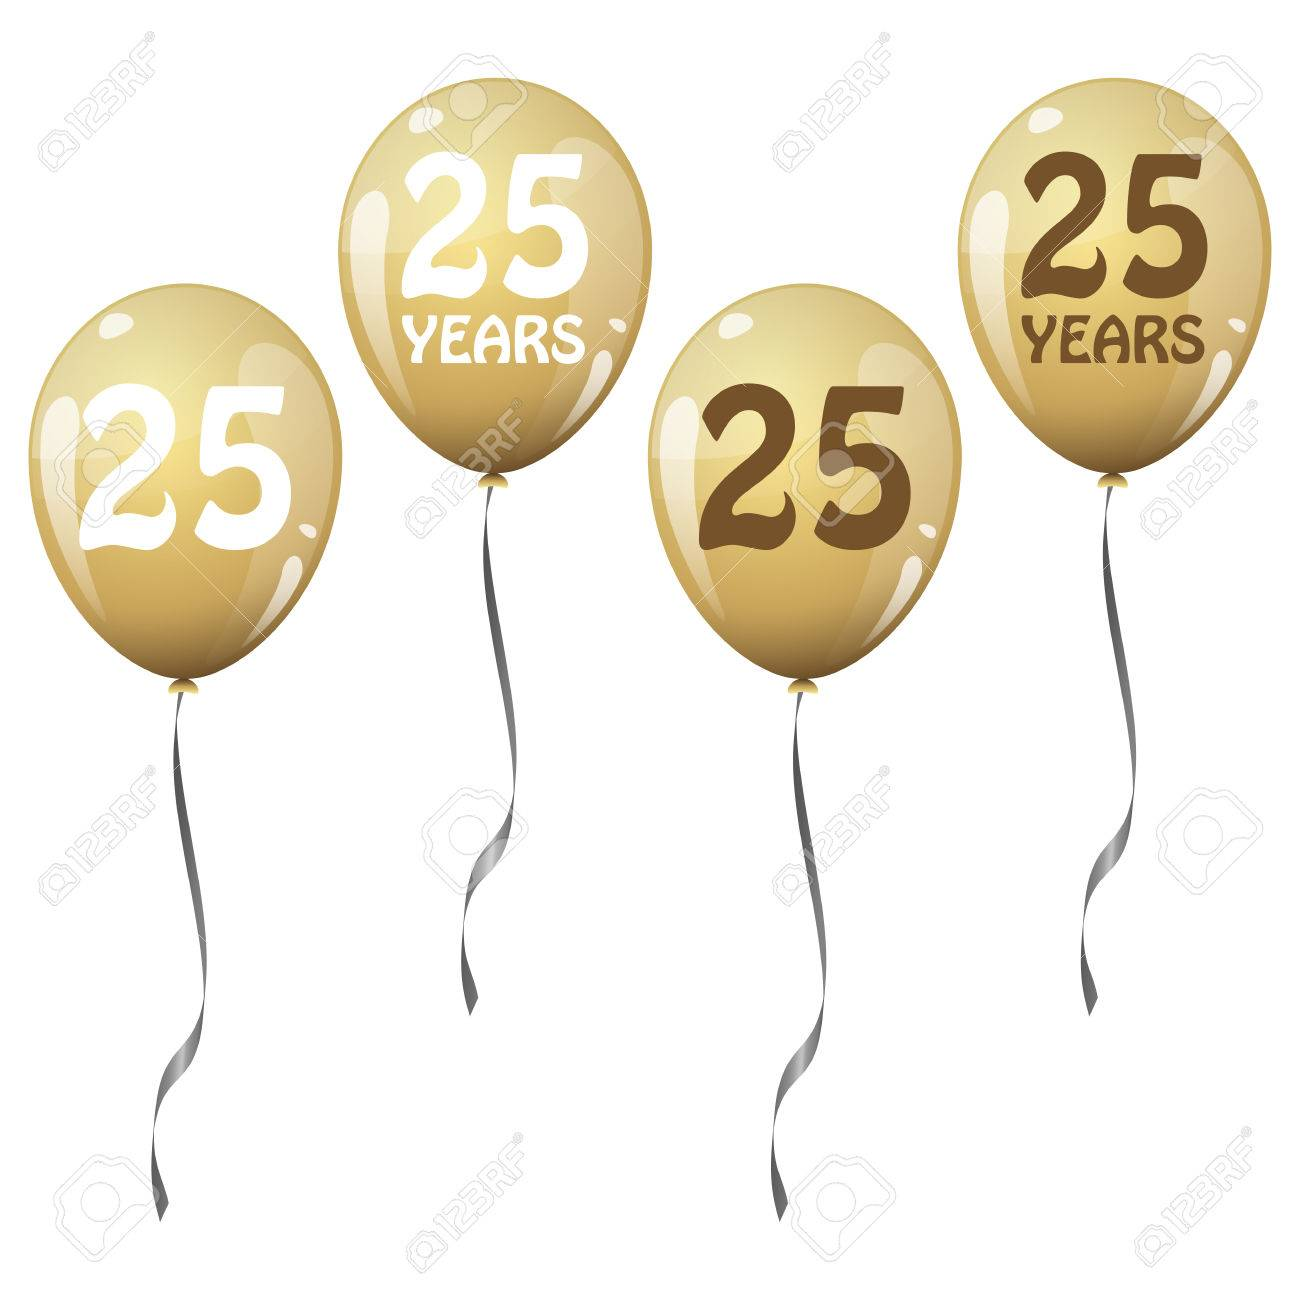 Four golden jubilee balloons for 25 years royalty free cliparts four golden jubilee balloons for 25 years stock vector 39594262 kristyandbryce Choice Image